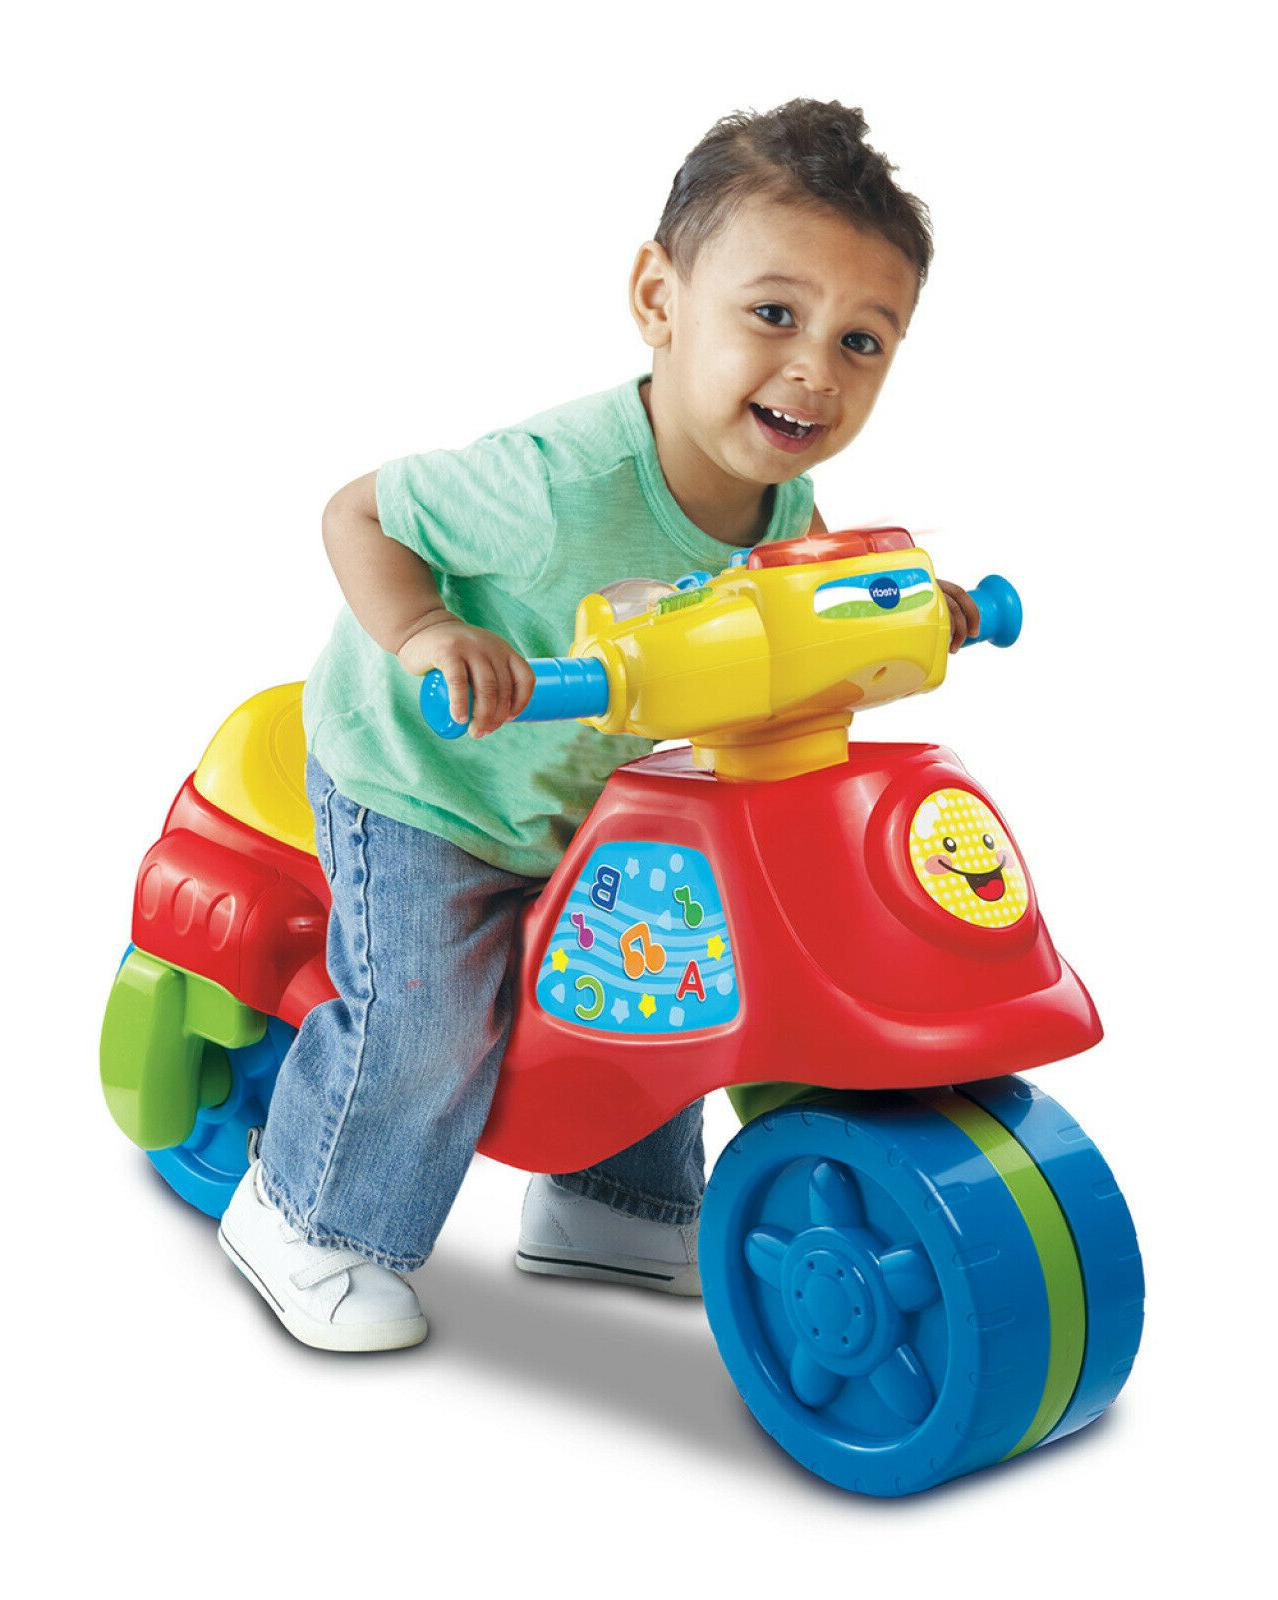 VTech 2 1 Learn And Zoom Riding Toy Year Old Kid Tricycle Toy